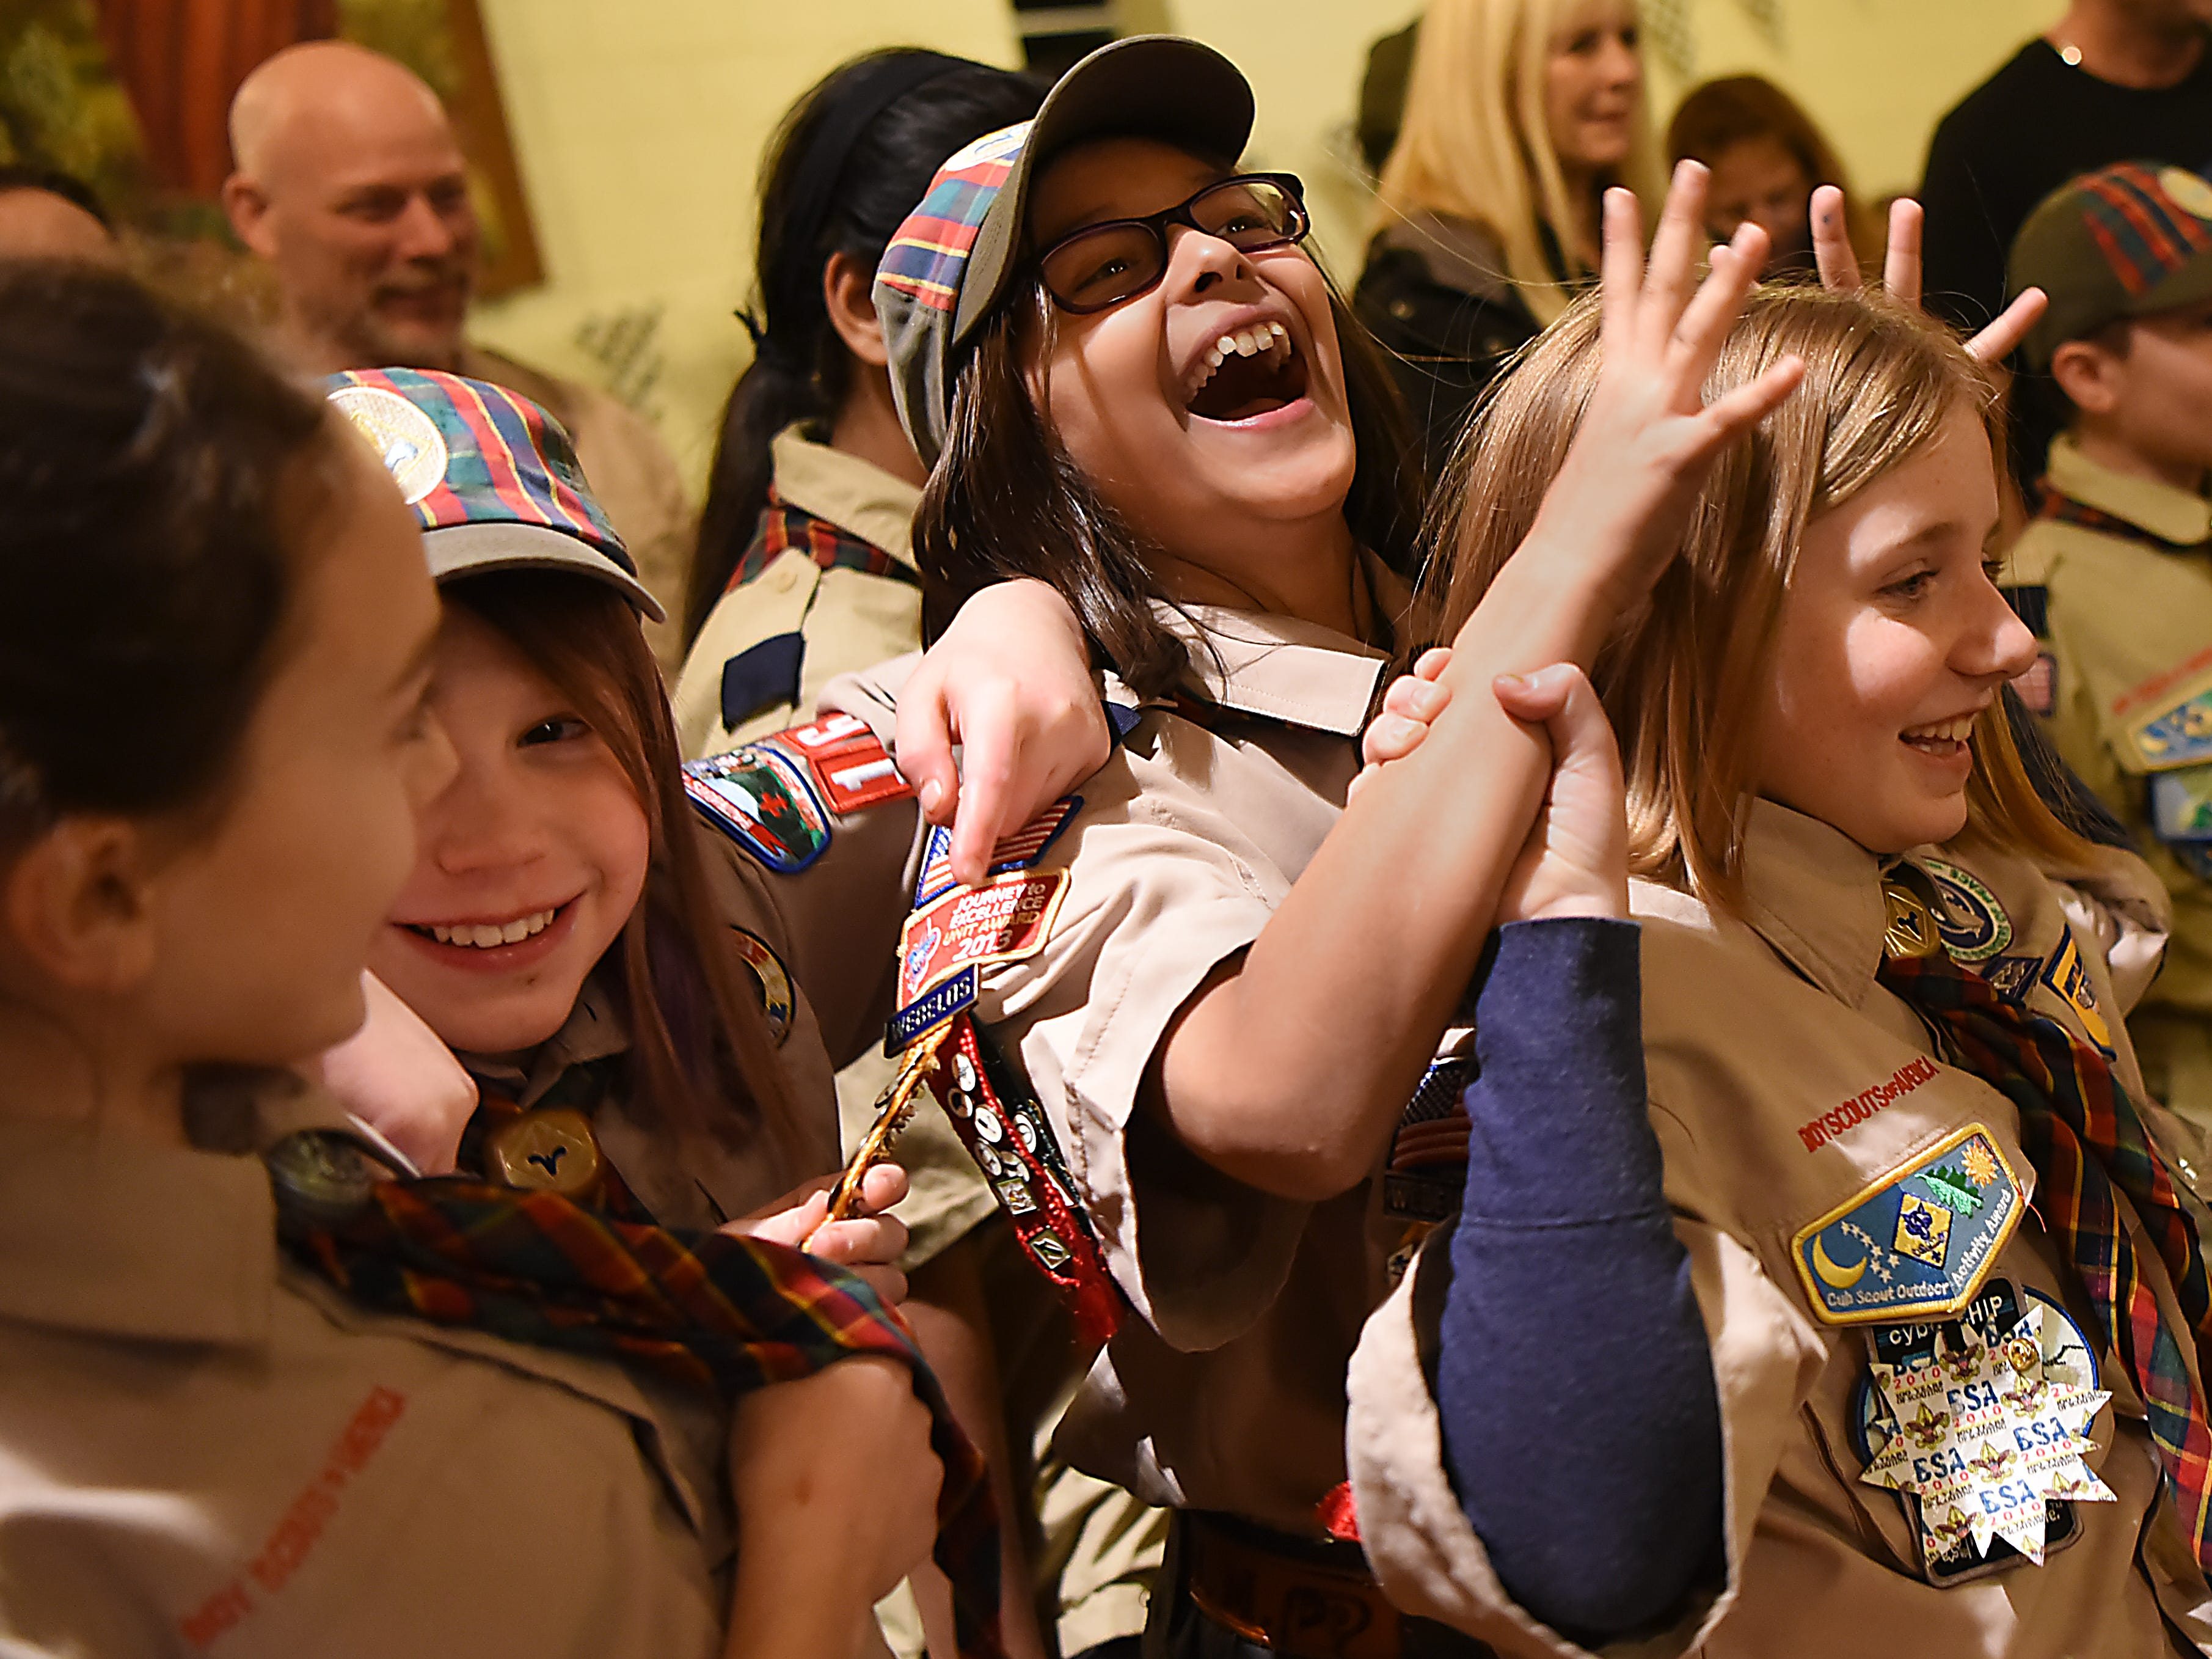 The Morris County Pinewood Derby at Holy Trinity Lutheran Church in Rockaway on Friday January 18, 2019. (From left) Addison Christian, Cameron Wagner, Anika Zoeller and Madison Sipple, all in Cub Scout pack 165 Arrow of Light den, share a laugh.